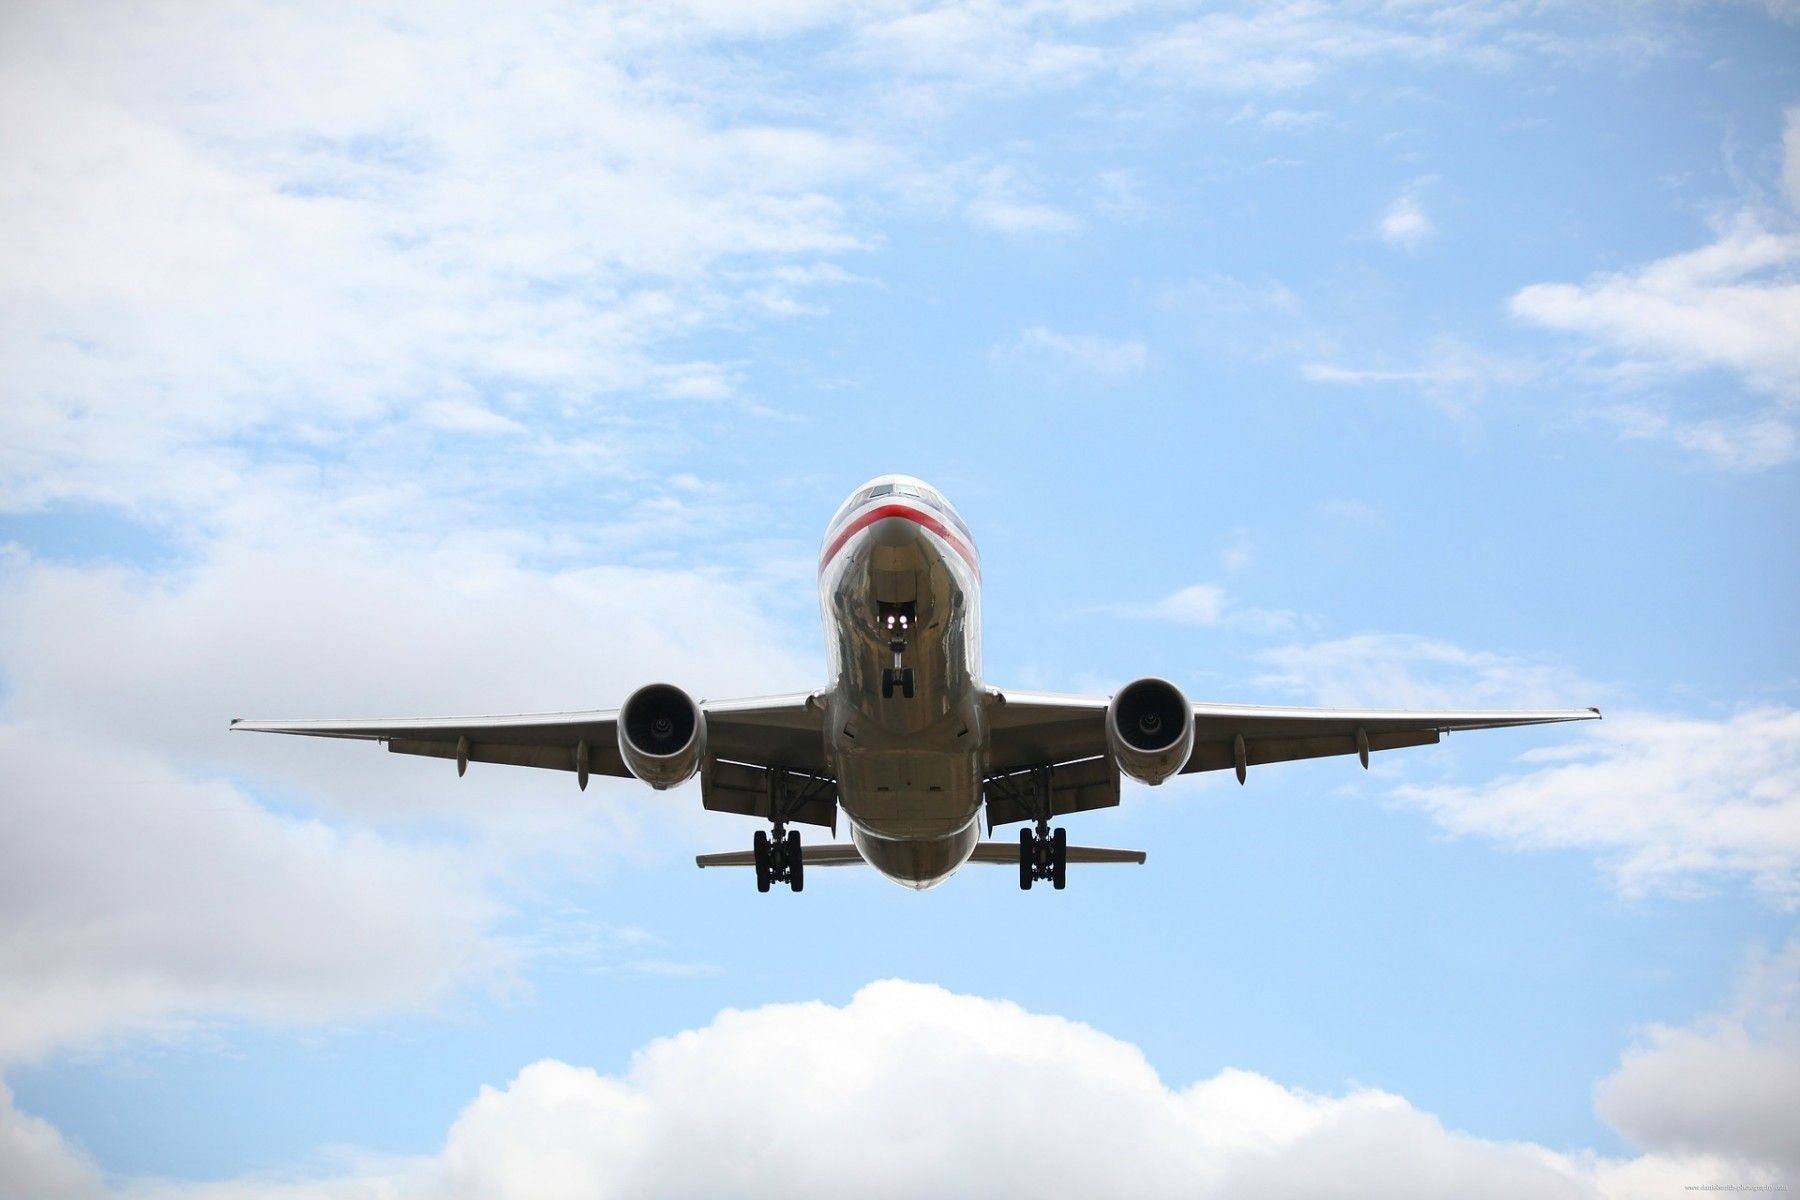 Batteries to power regional passenger airplanes could